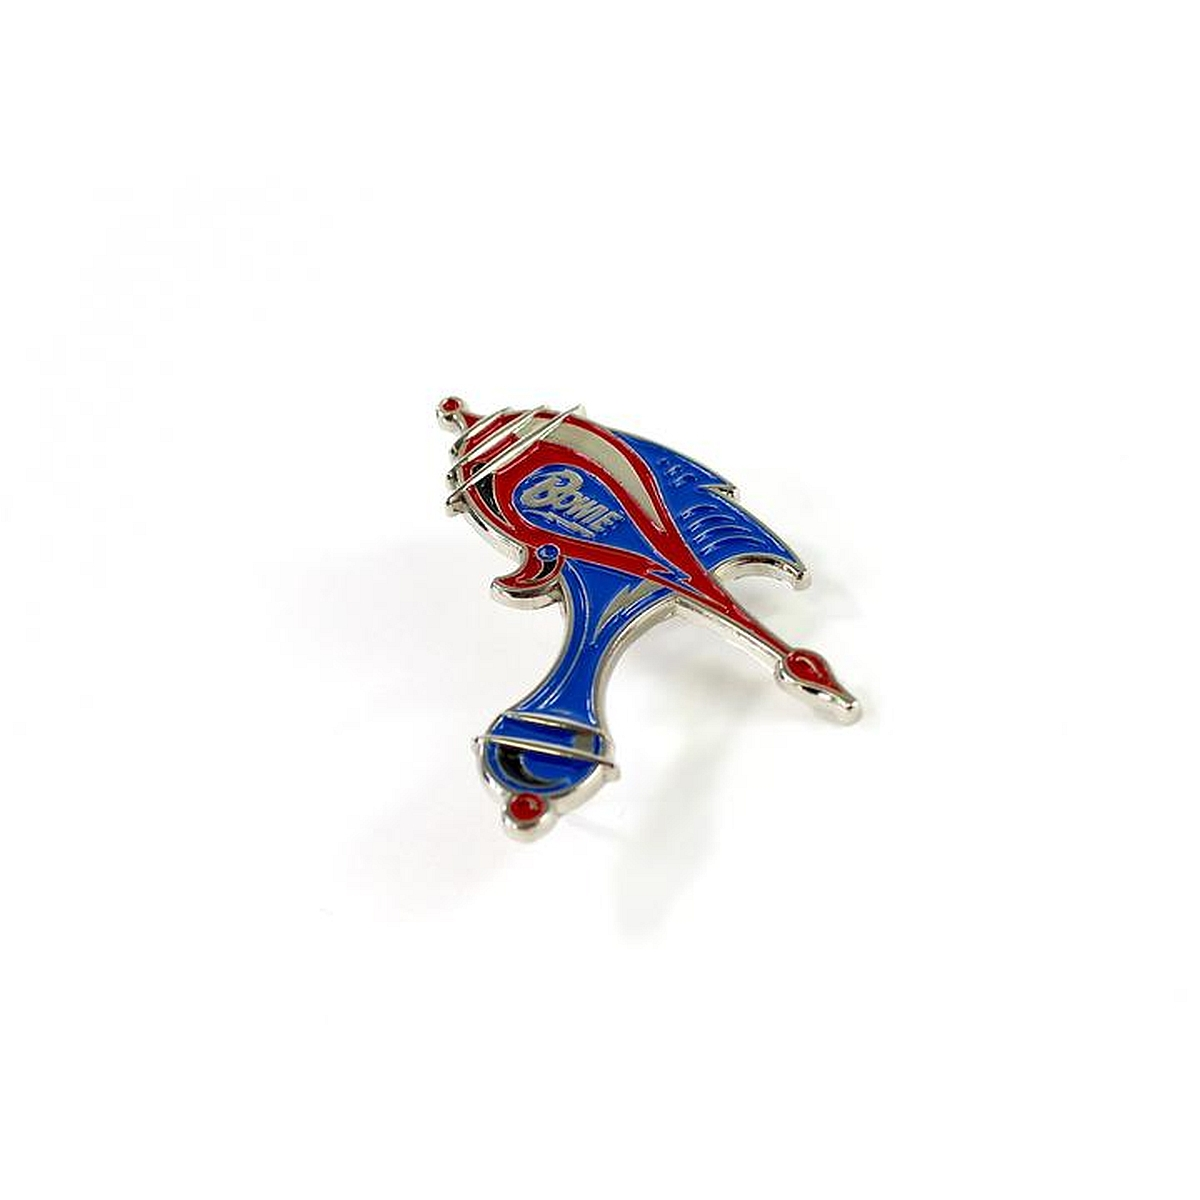 The David Bowie x Sloth Steady Raygun Pin